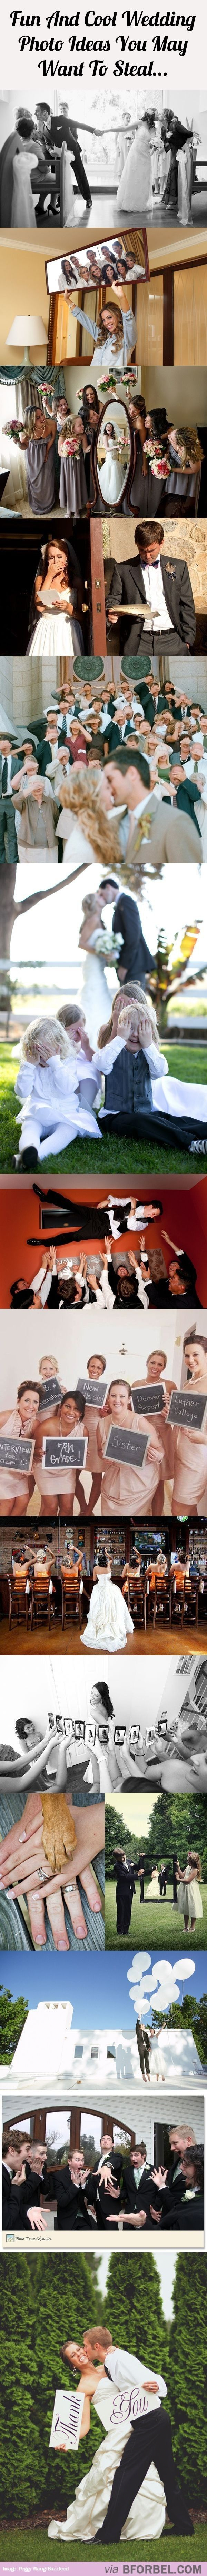 cool wedding shot ideas%0A    Fun And Cool Wedding Photo Ideas You May Want To Steal u